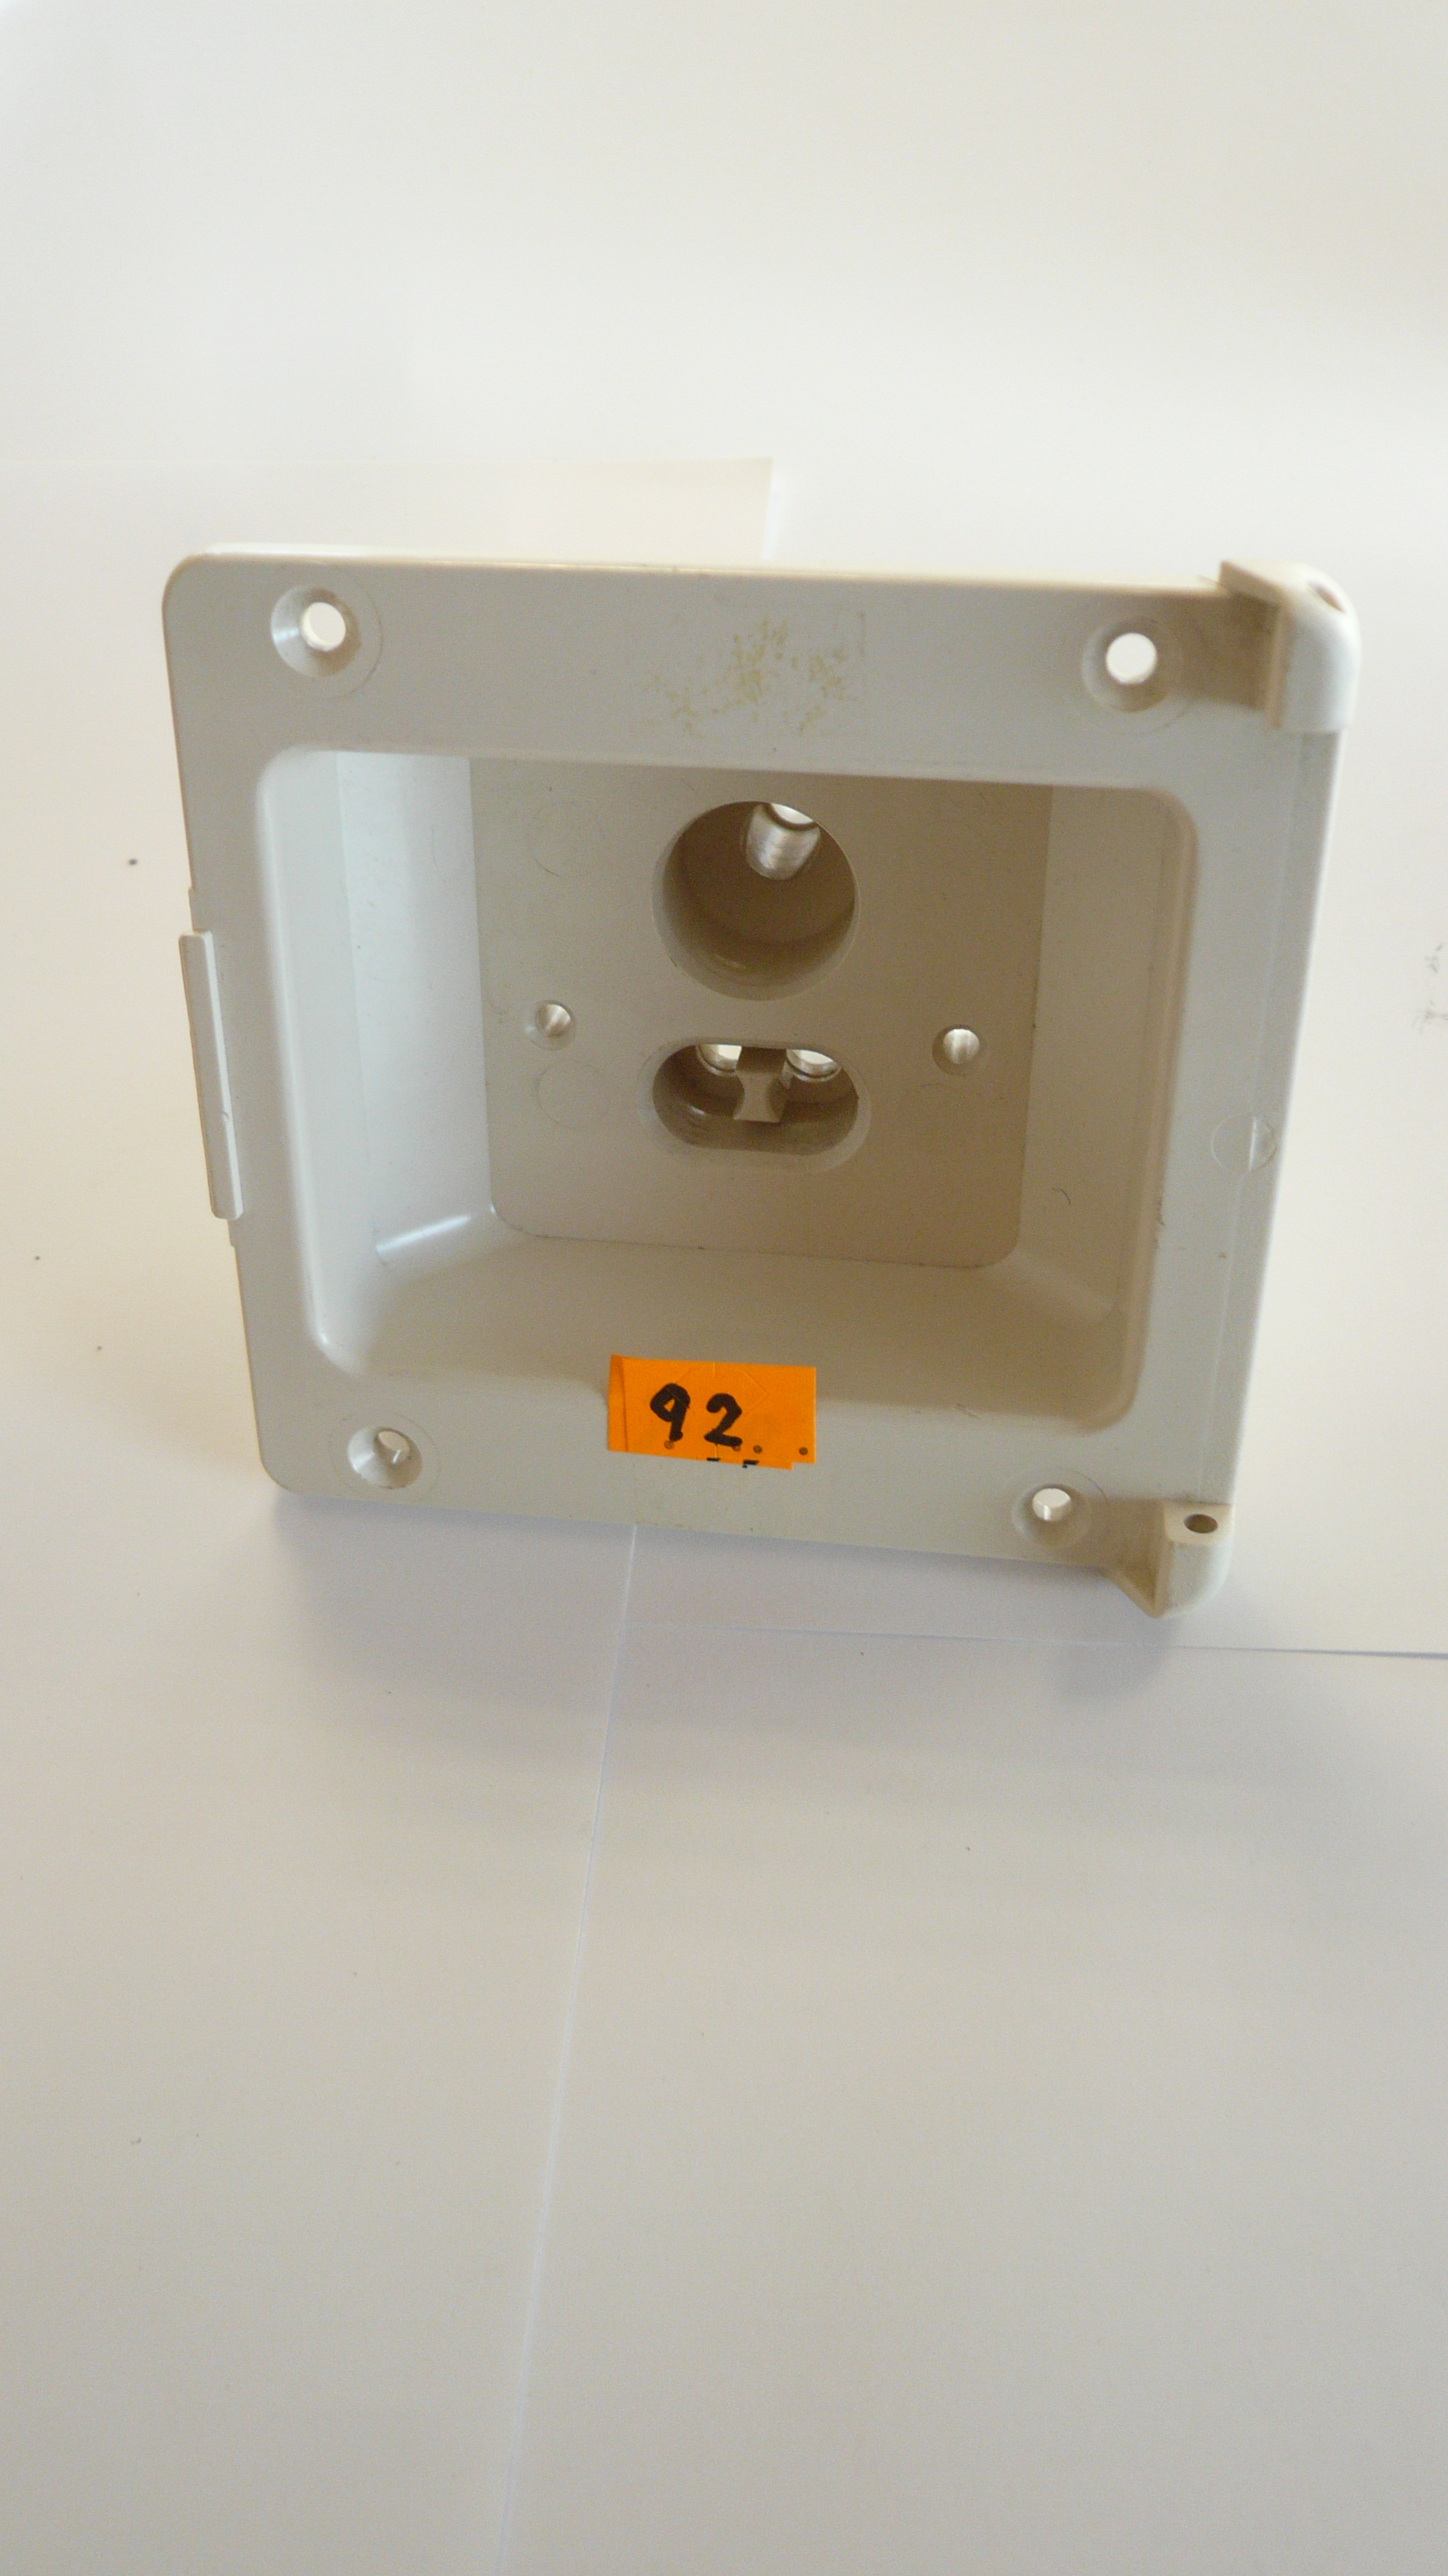 Water and electric housing socket